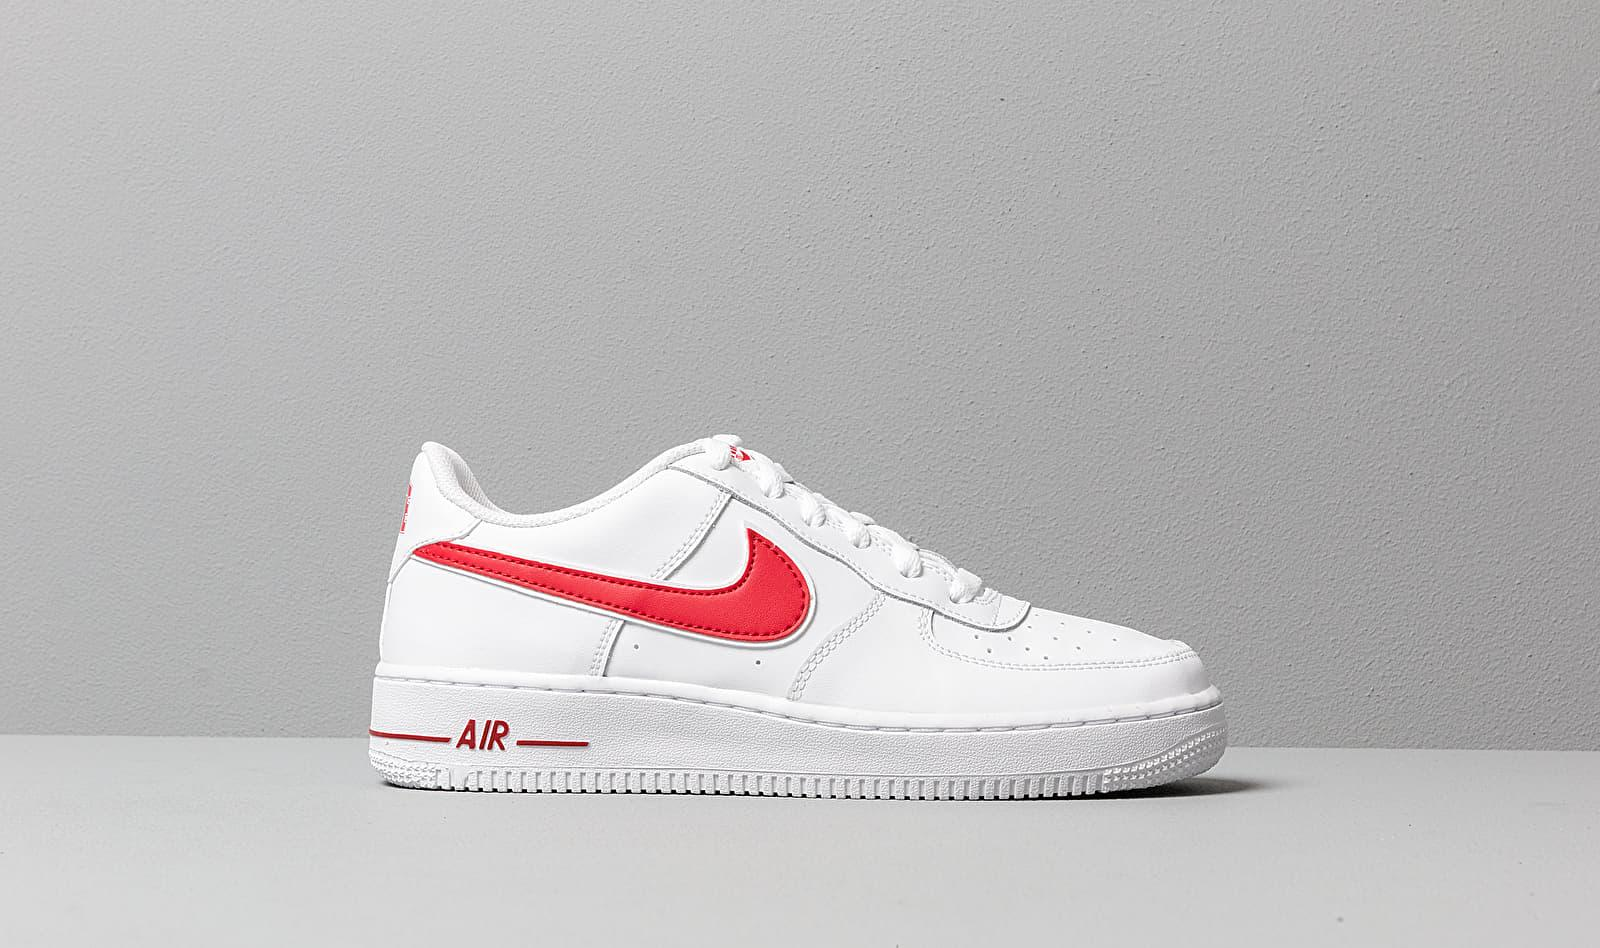 Nike Air Force 1-3 (gs) White/ Gym Red - Lyst